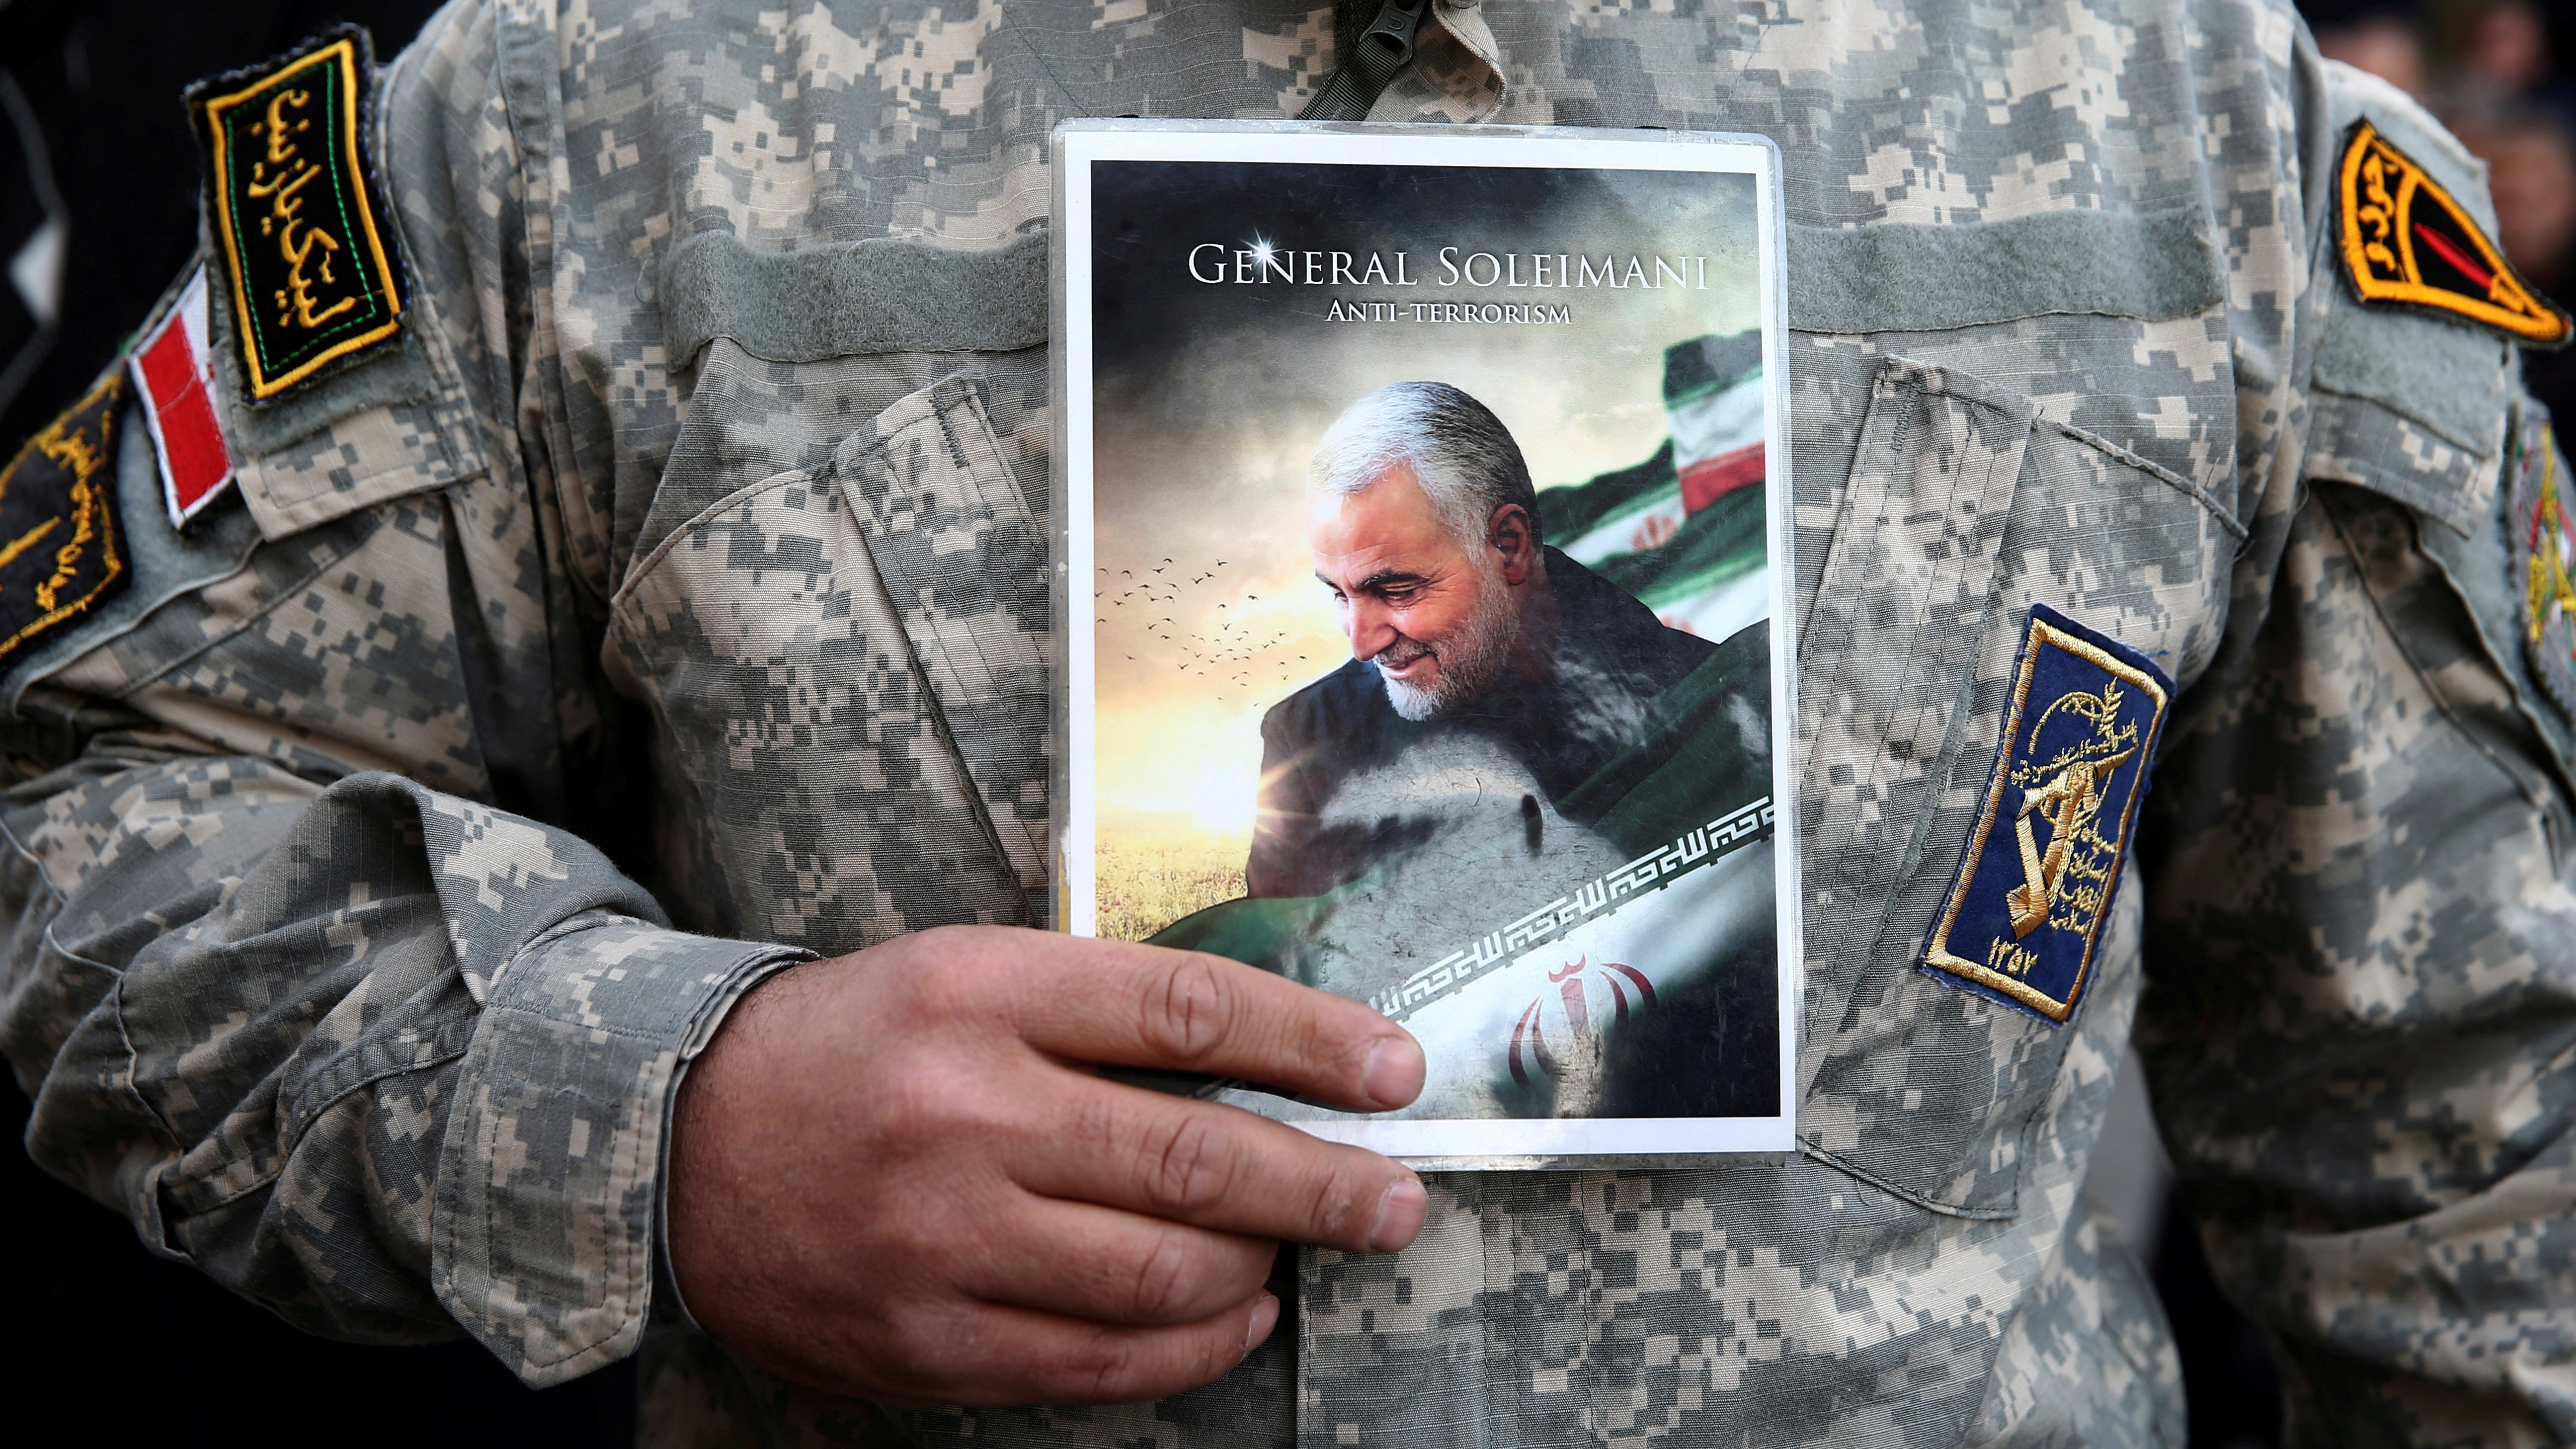 A demonstrator in Tehran holds a picture of Qassem Soleimani during a protest against the US assassination of the Iranian major general.